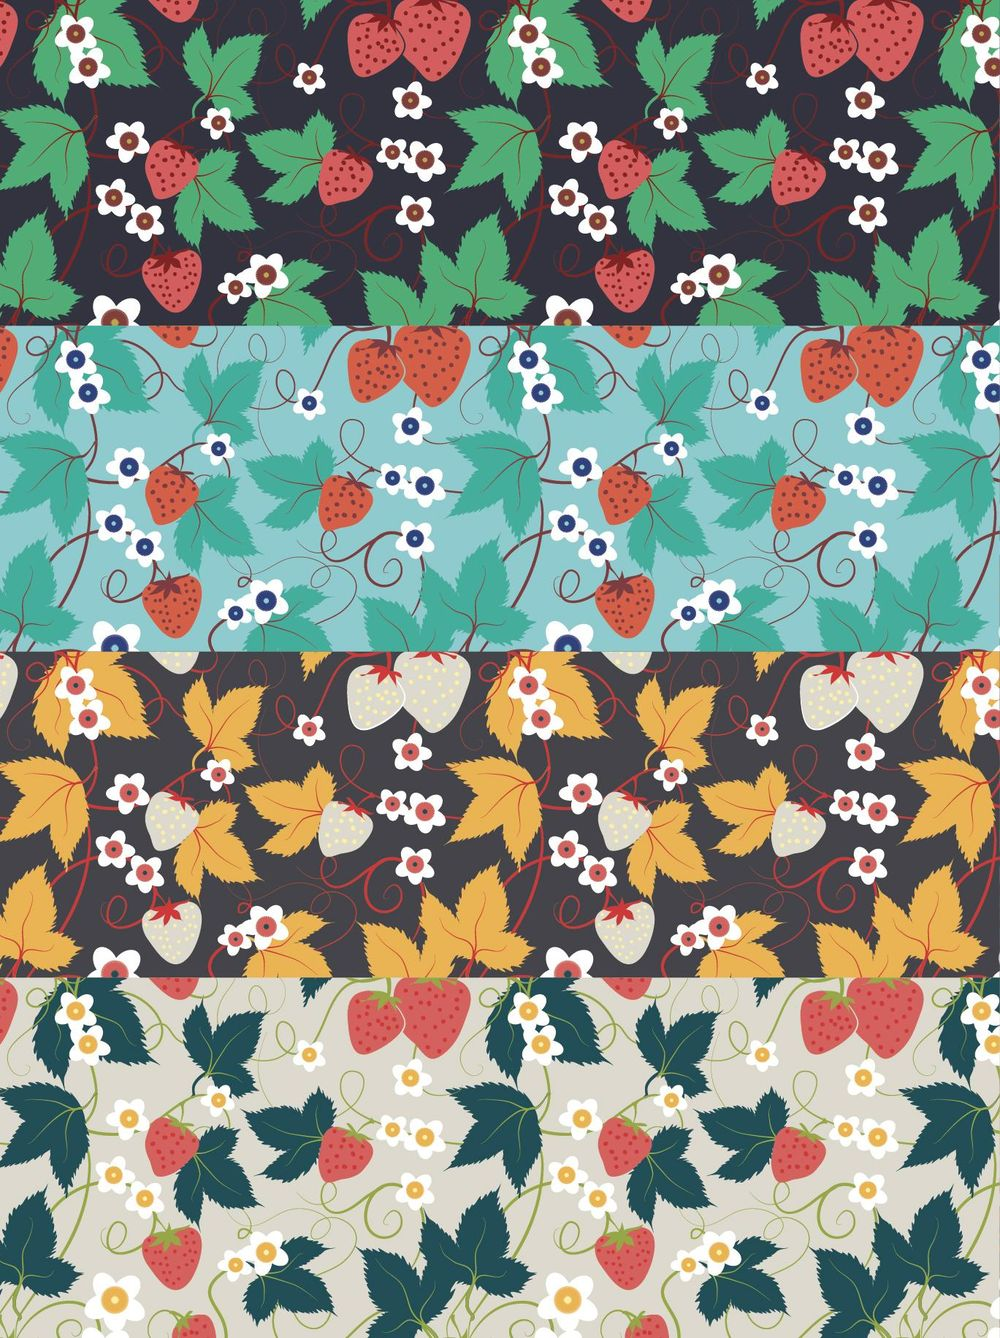 Olivia's Repeat Patterns with Adobe Illustrator - image 5 - student project